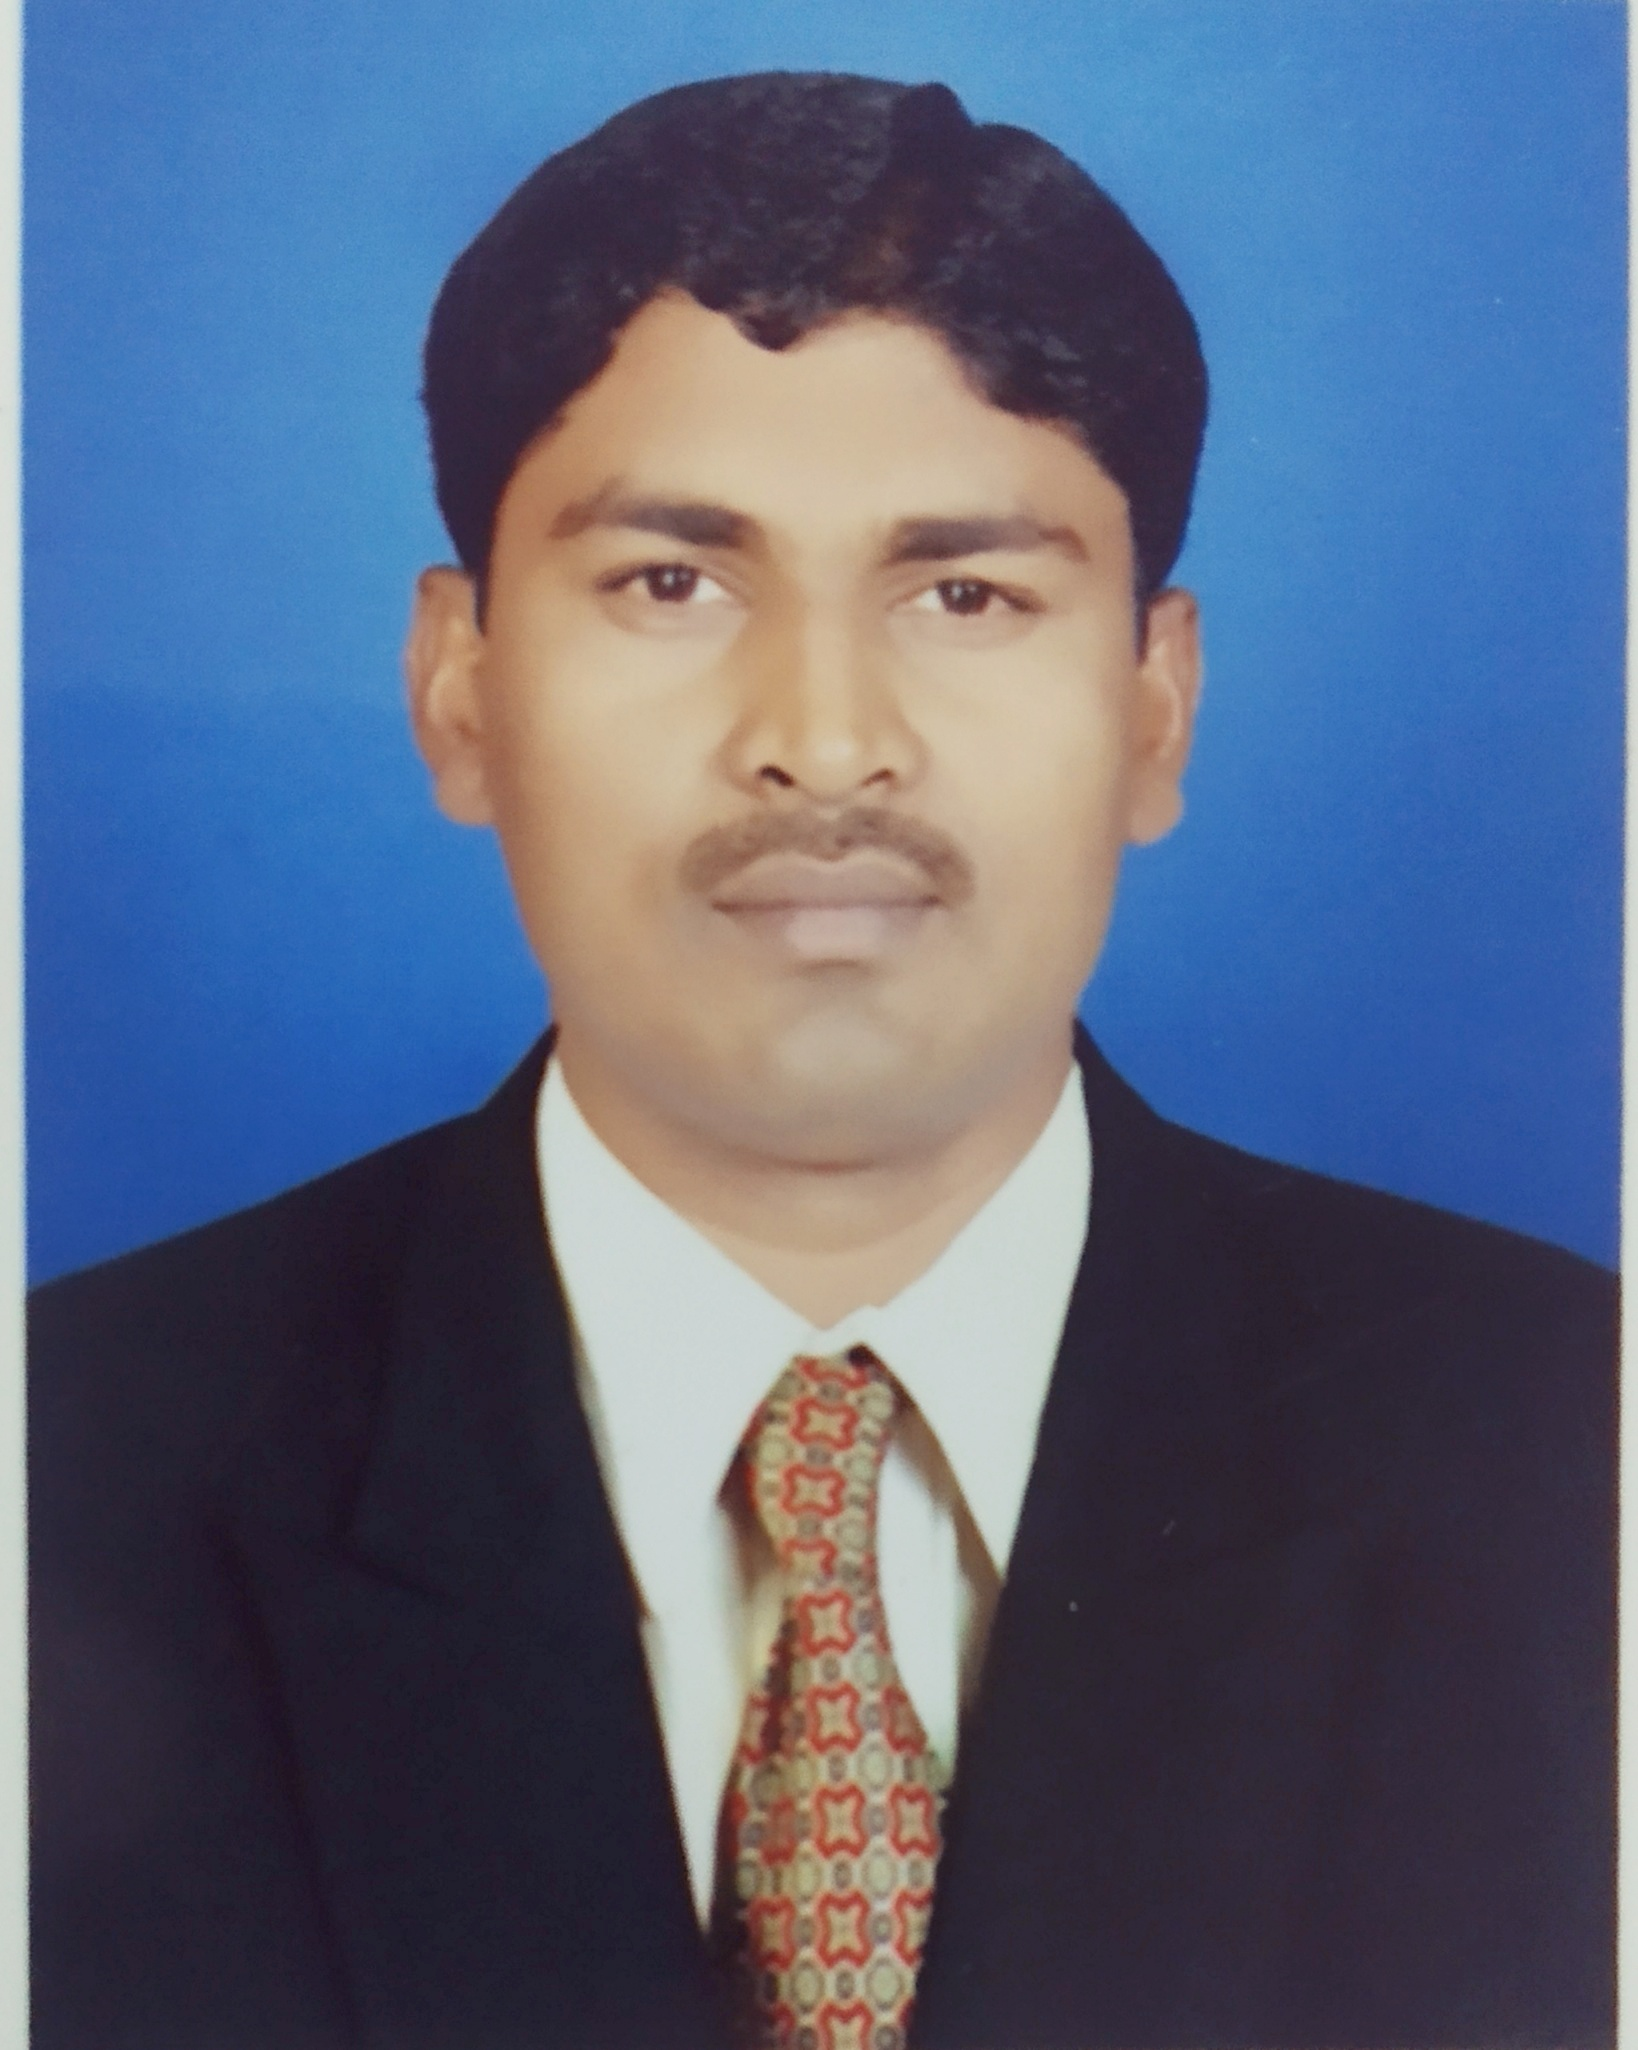 Mr. Deepak P. Khedkar